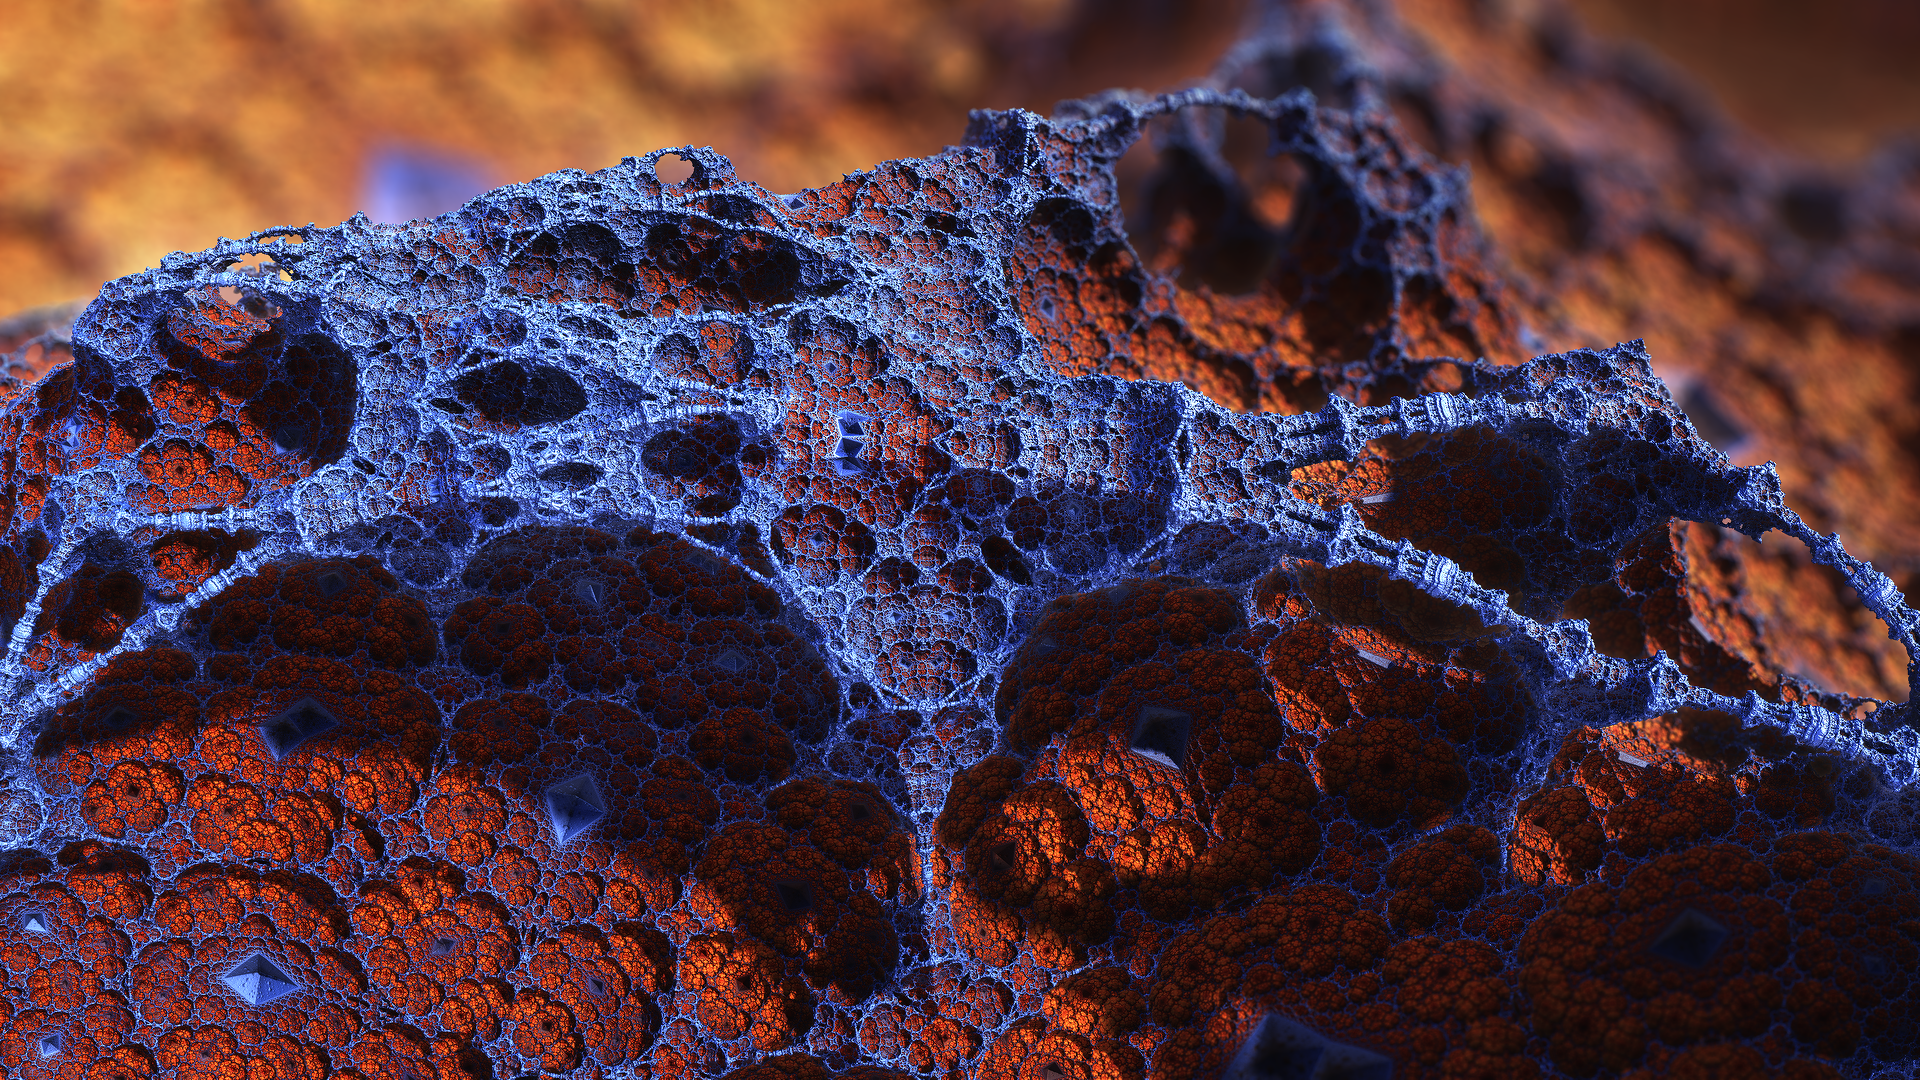 3d Fractal Wallpapers High Definition With Hd Wallpaper Resolution 1920x1080 Px 5 10 Mb